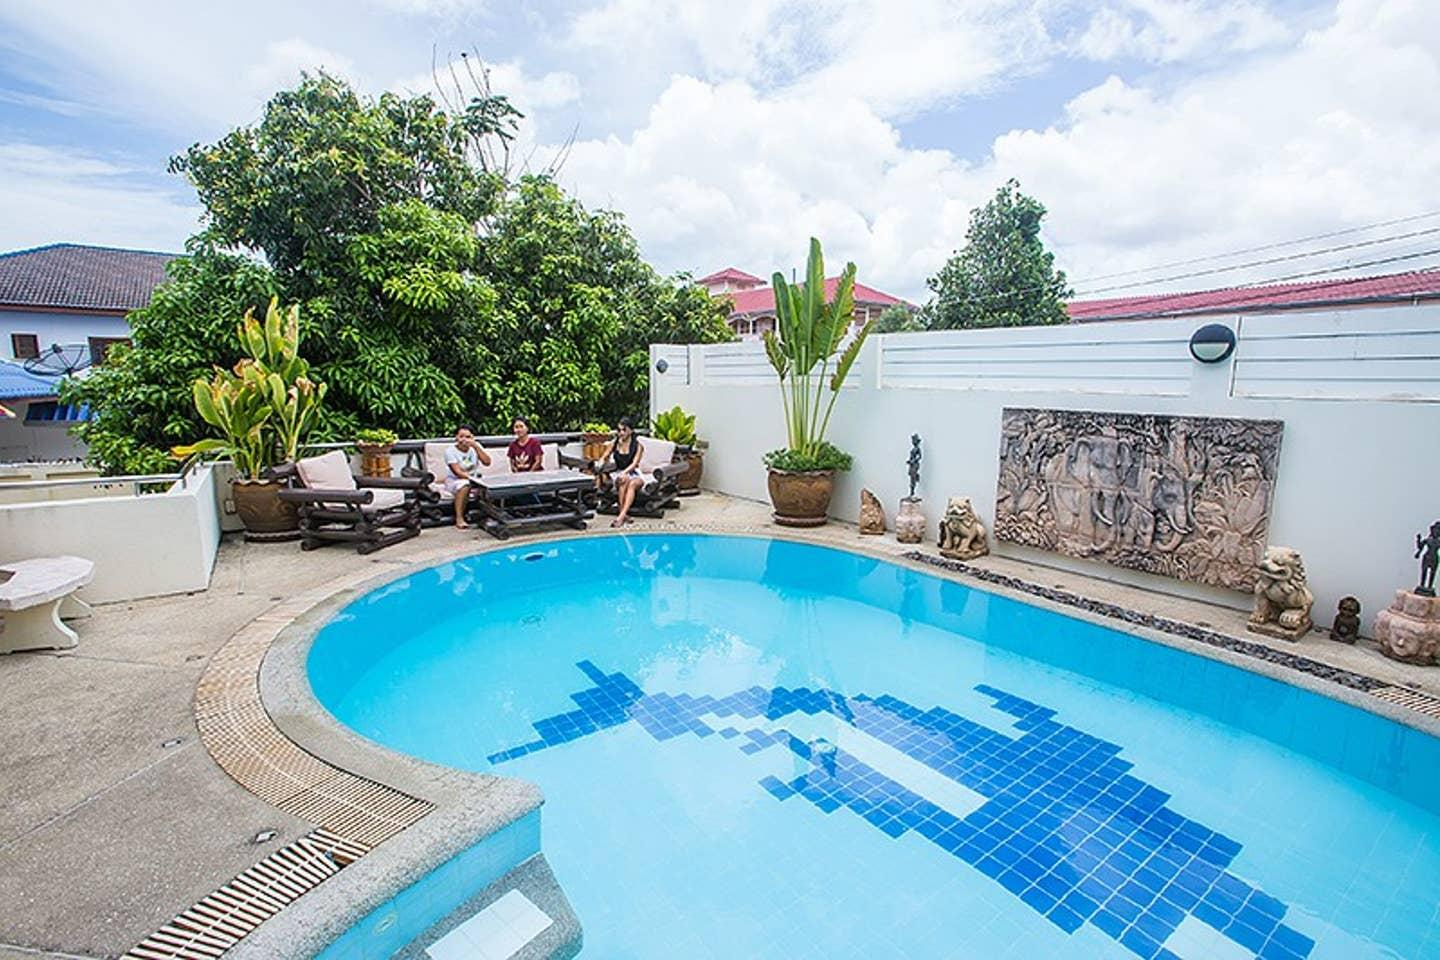 Apartment 5BR Private Pool Villa in Amazing Pattaya w Sun deck Parking photo 22534366